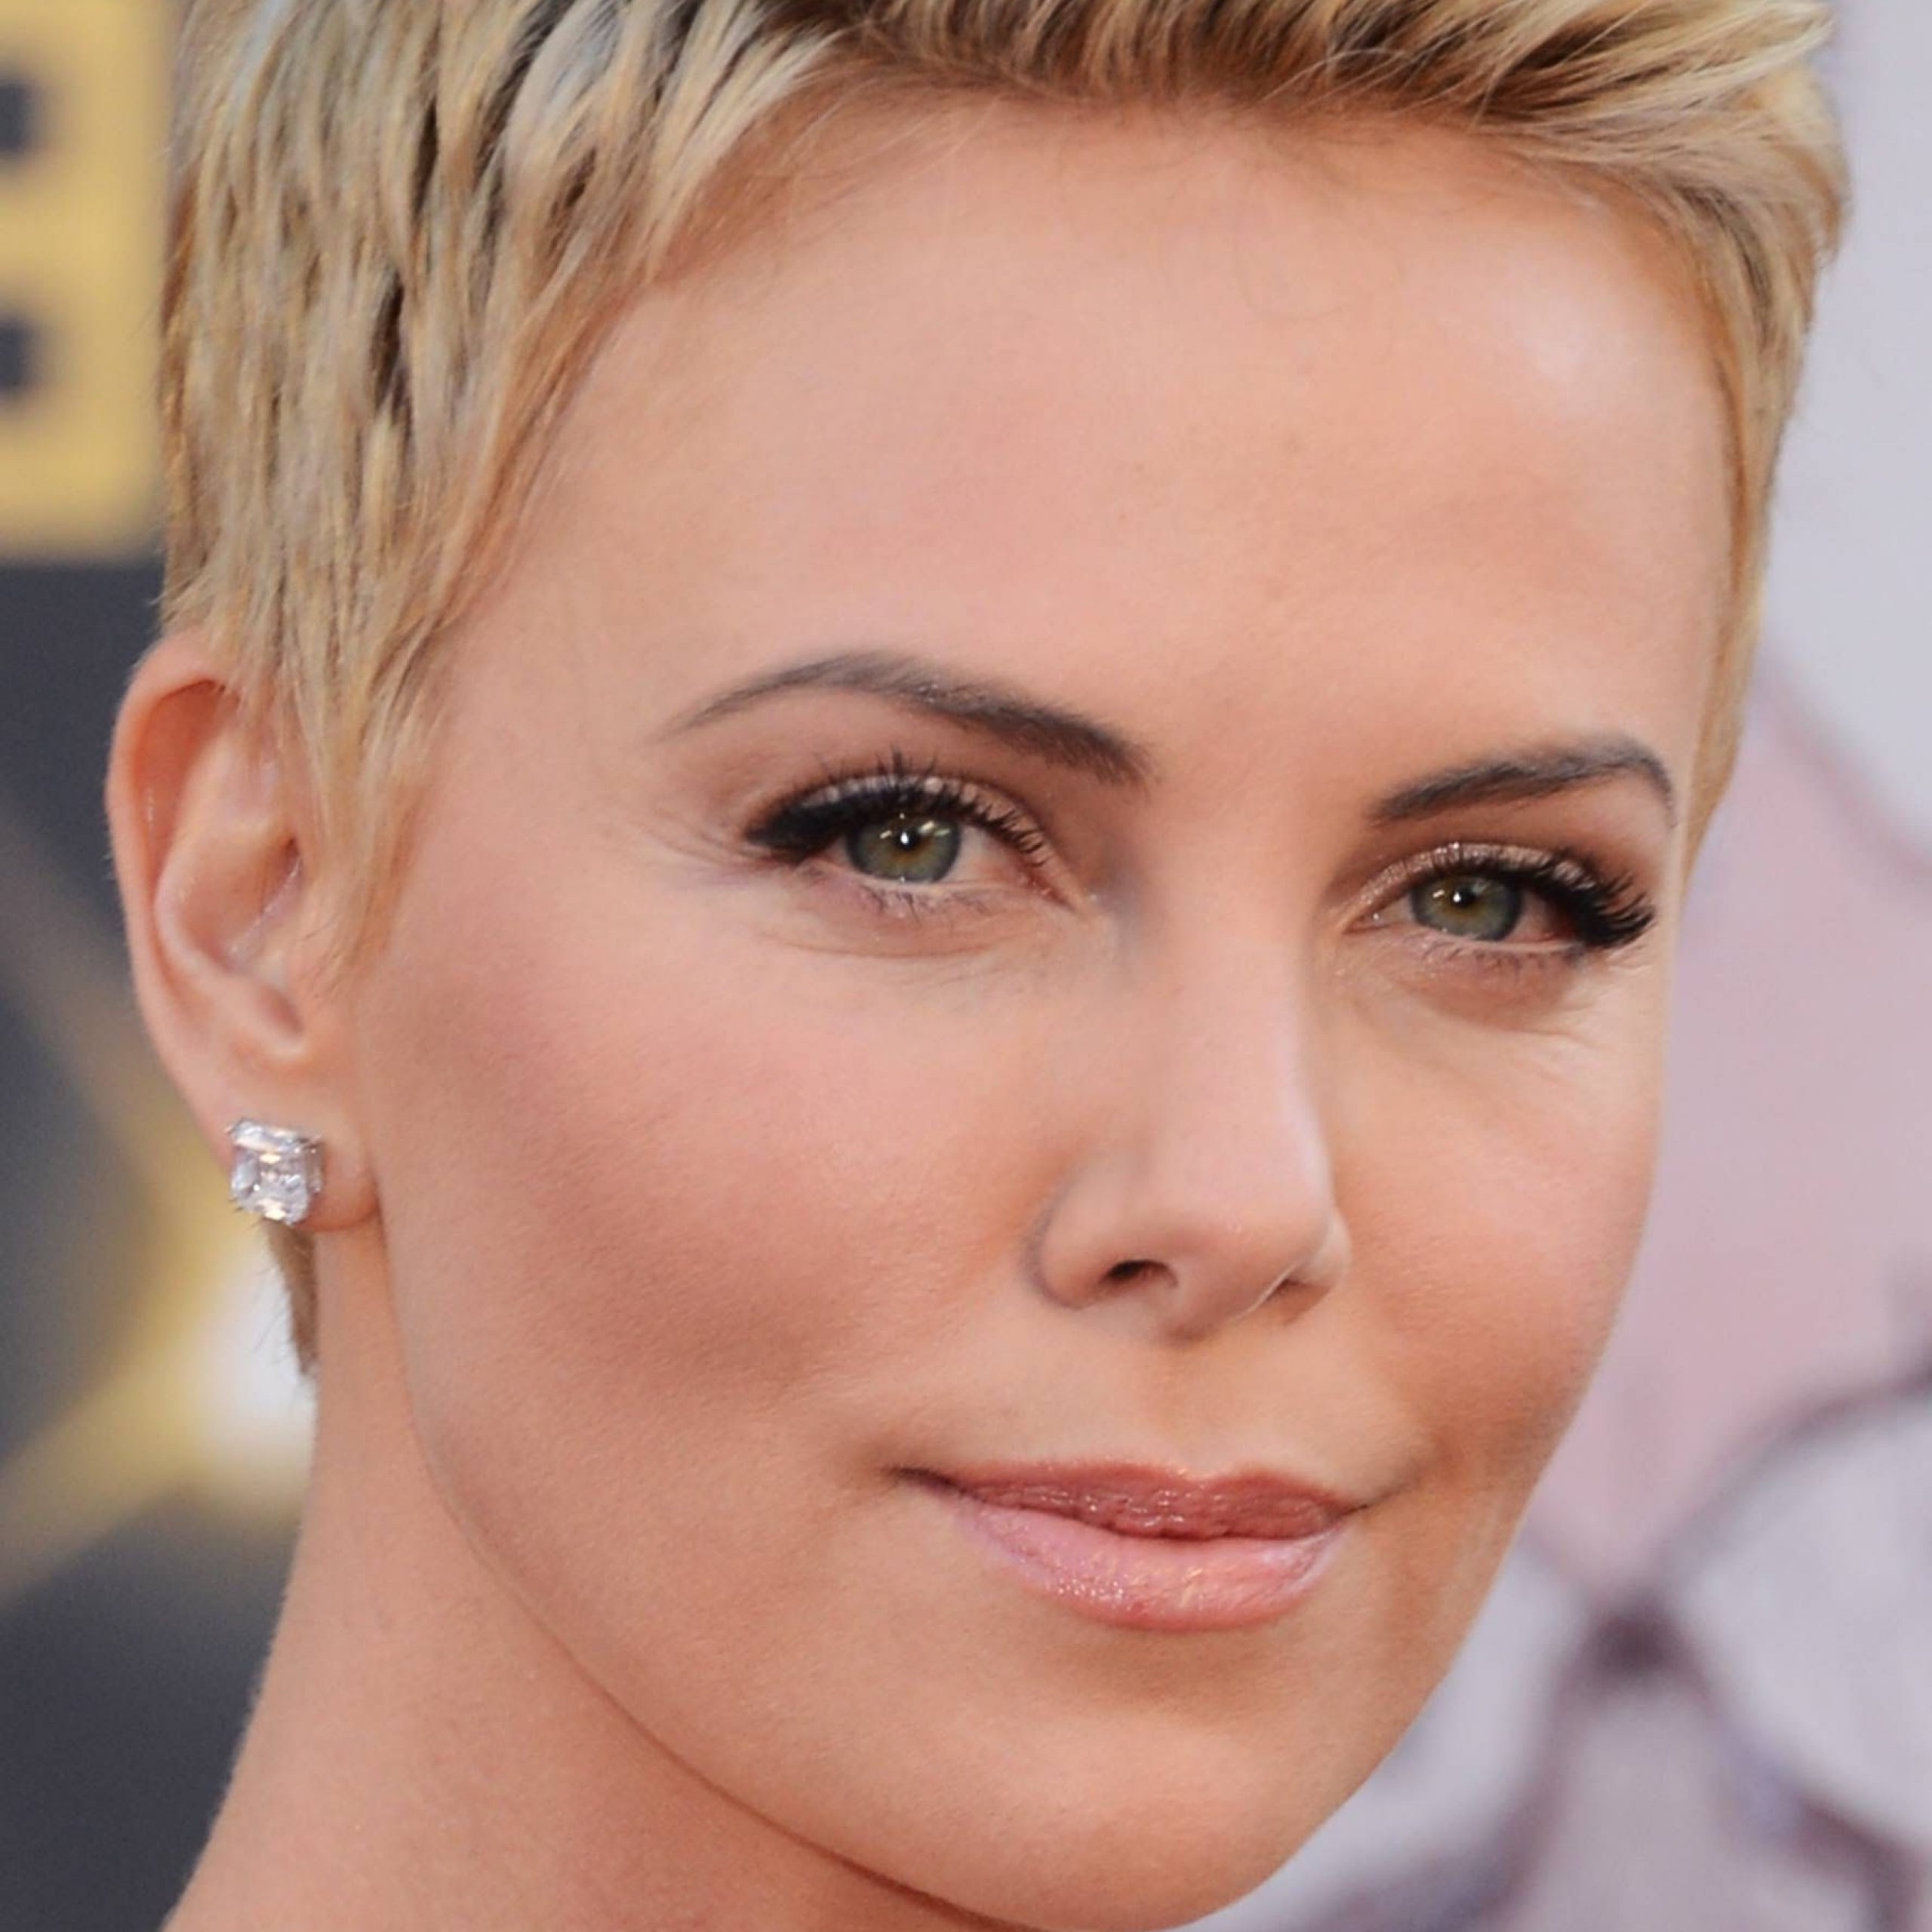 Fashion : Hairstyles Choppy Pixie Cut Round Face The Best 20 With Cropped Haircuts For A Round Face (View 12 of 20)